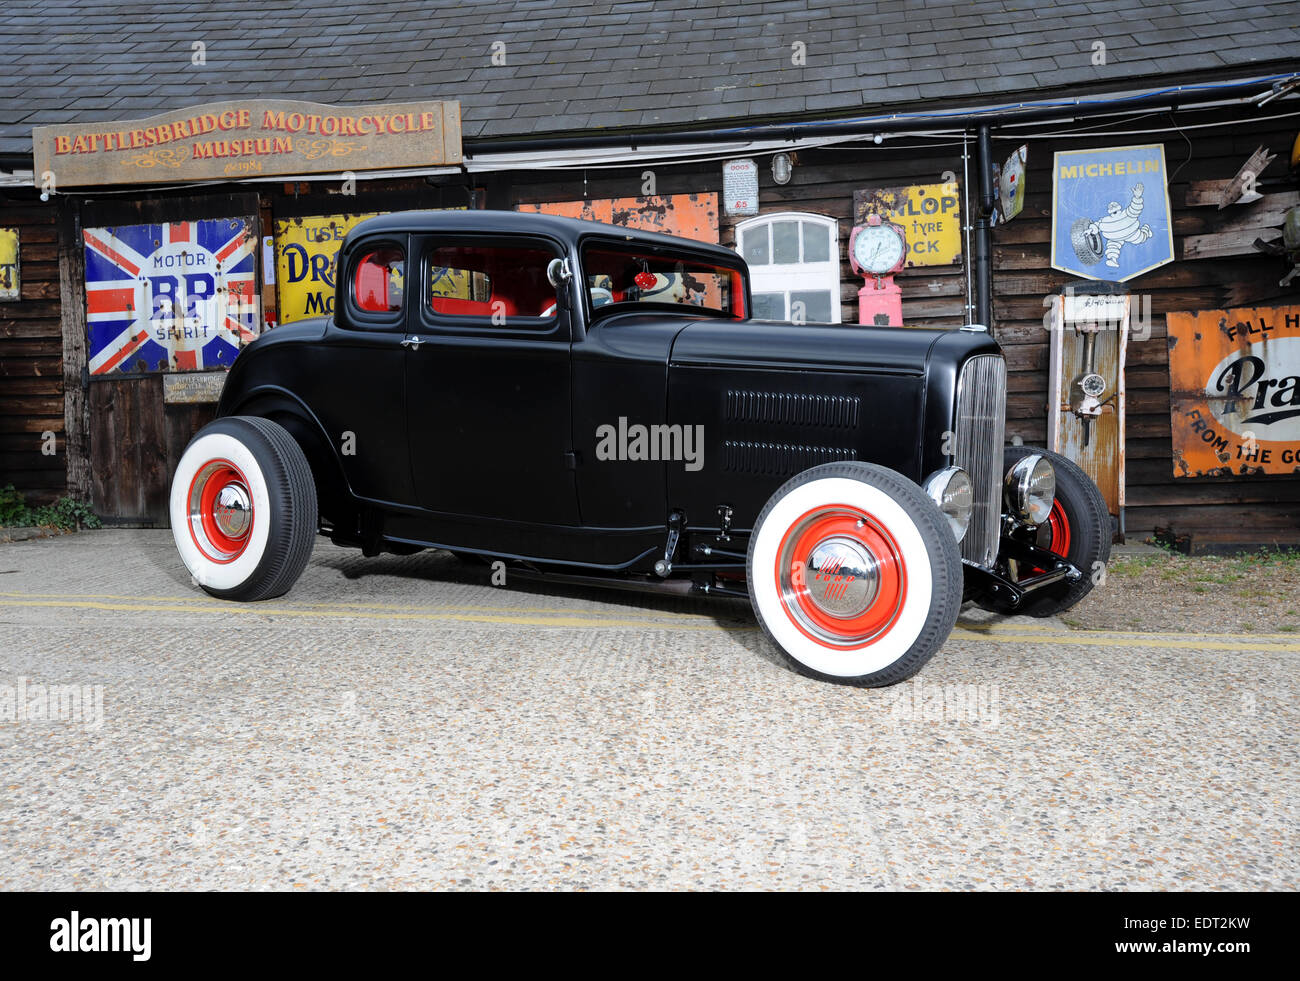 1930s Ford deuce traditional hotrod Stock Photo: 77360973 - Alamy